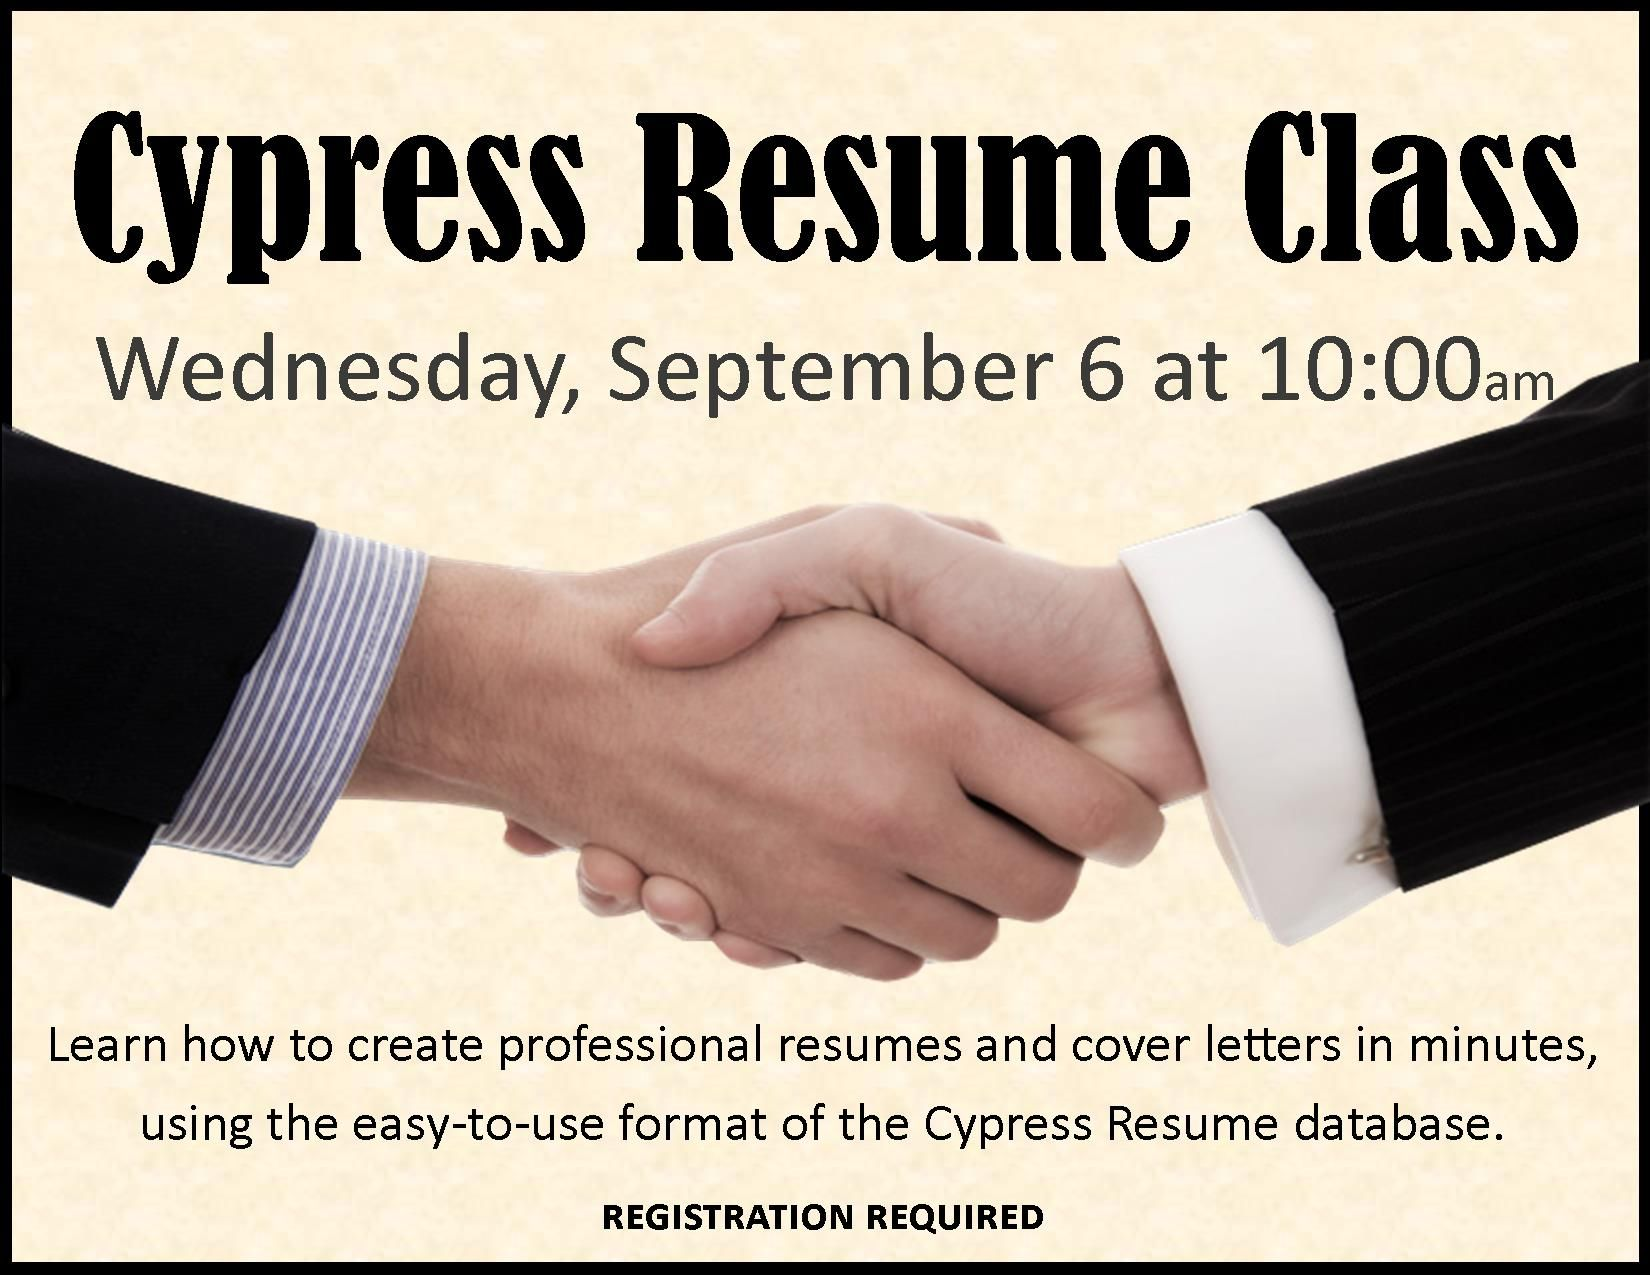 resume Cypress Resume cypress resume class wednesday september 6 2017 10am learn how to create professional resumes and cover letters in minute using the easy use format of databa